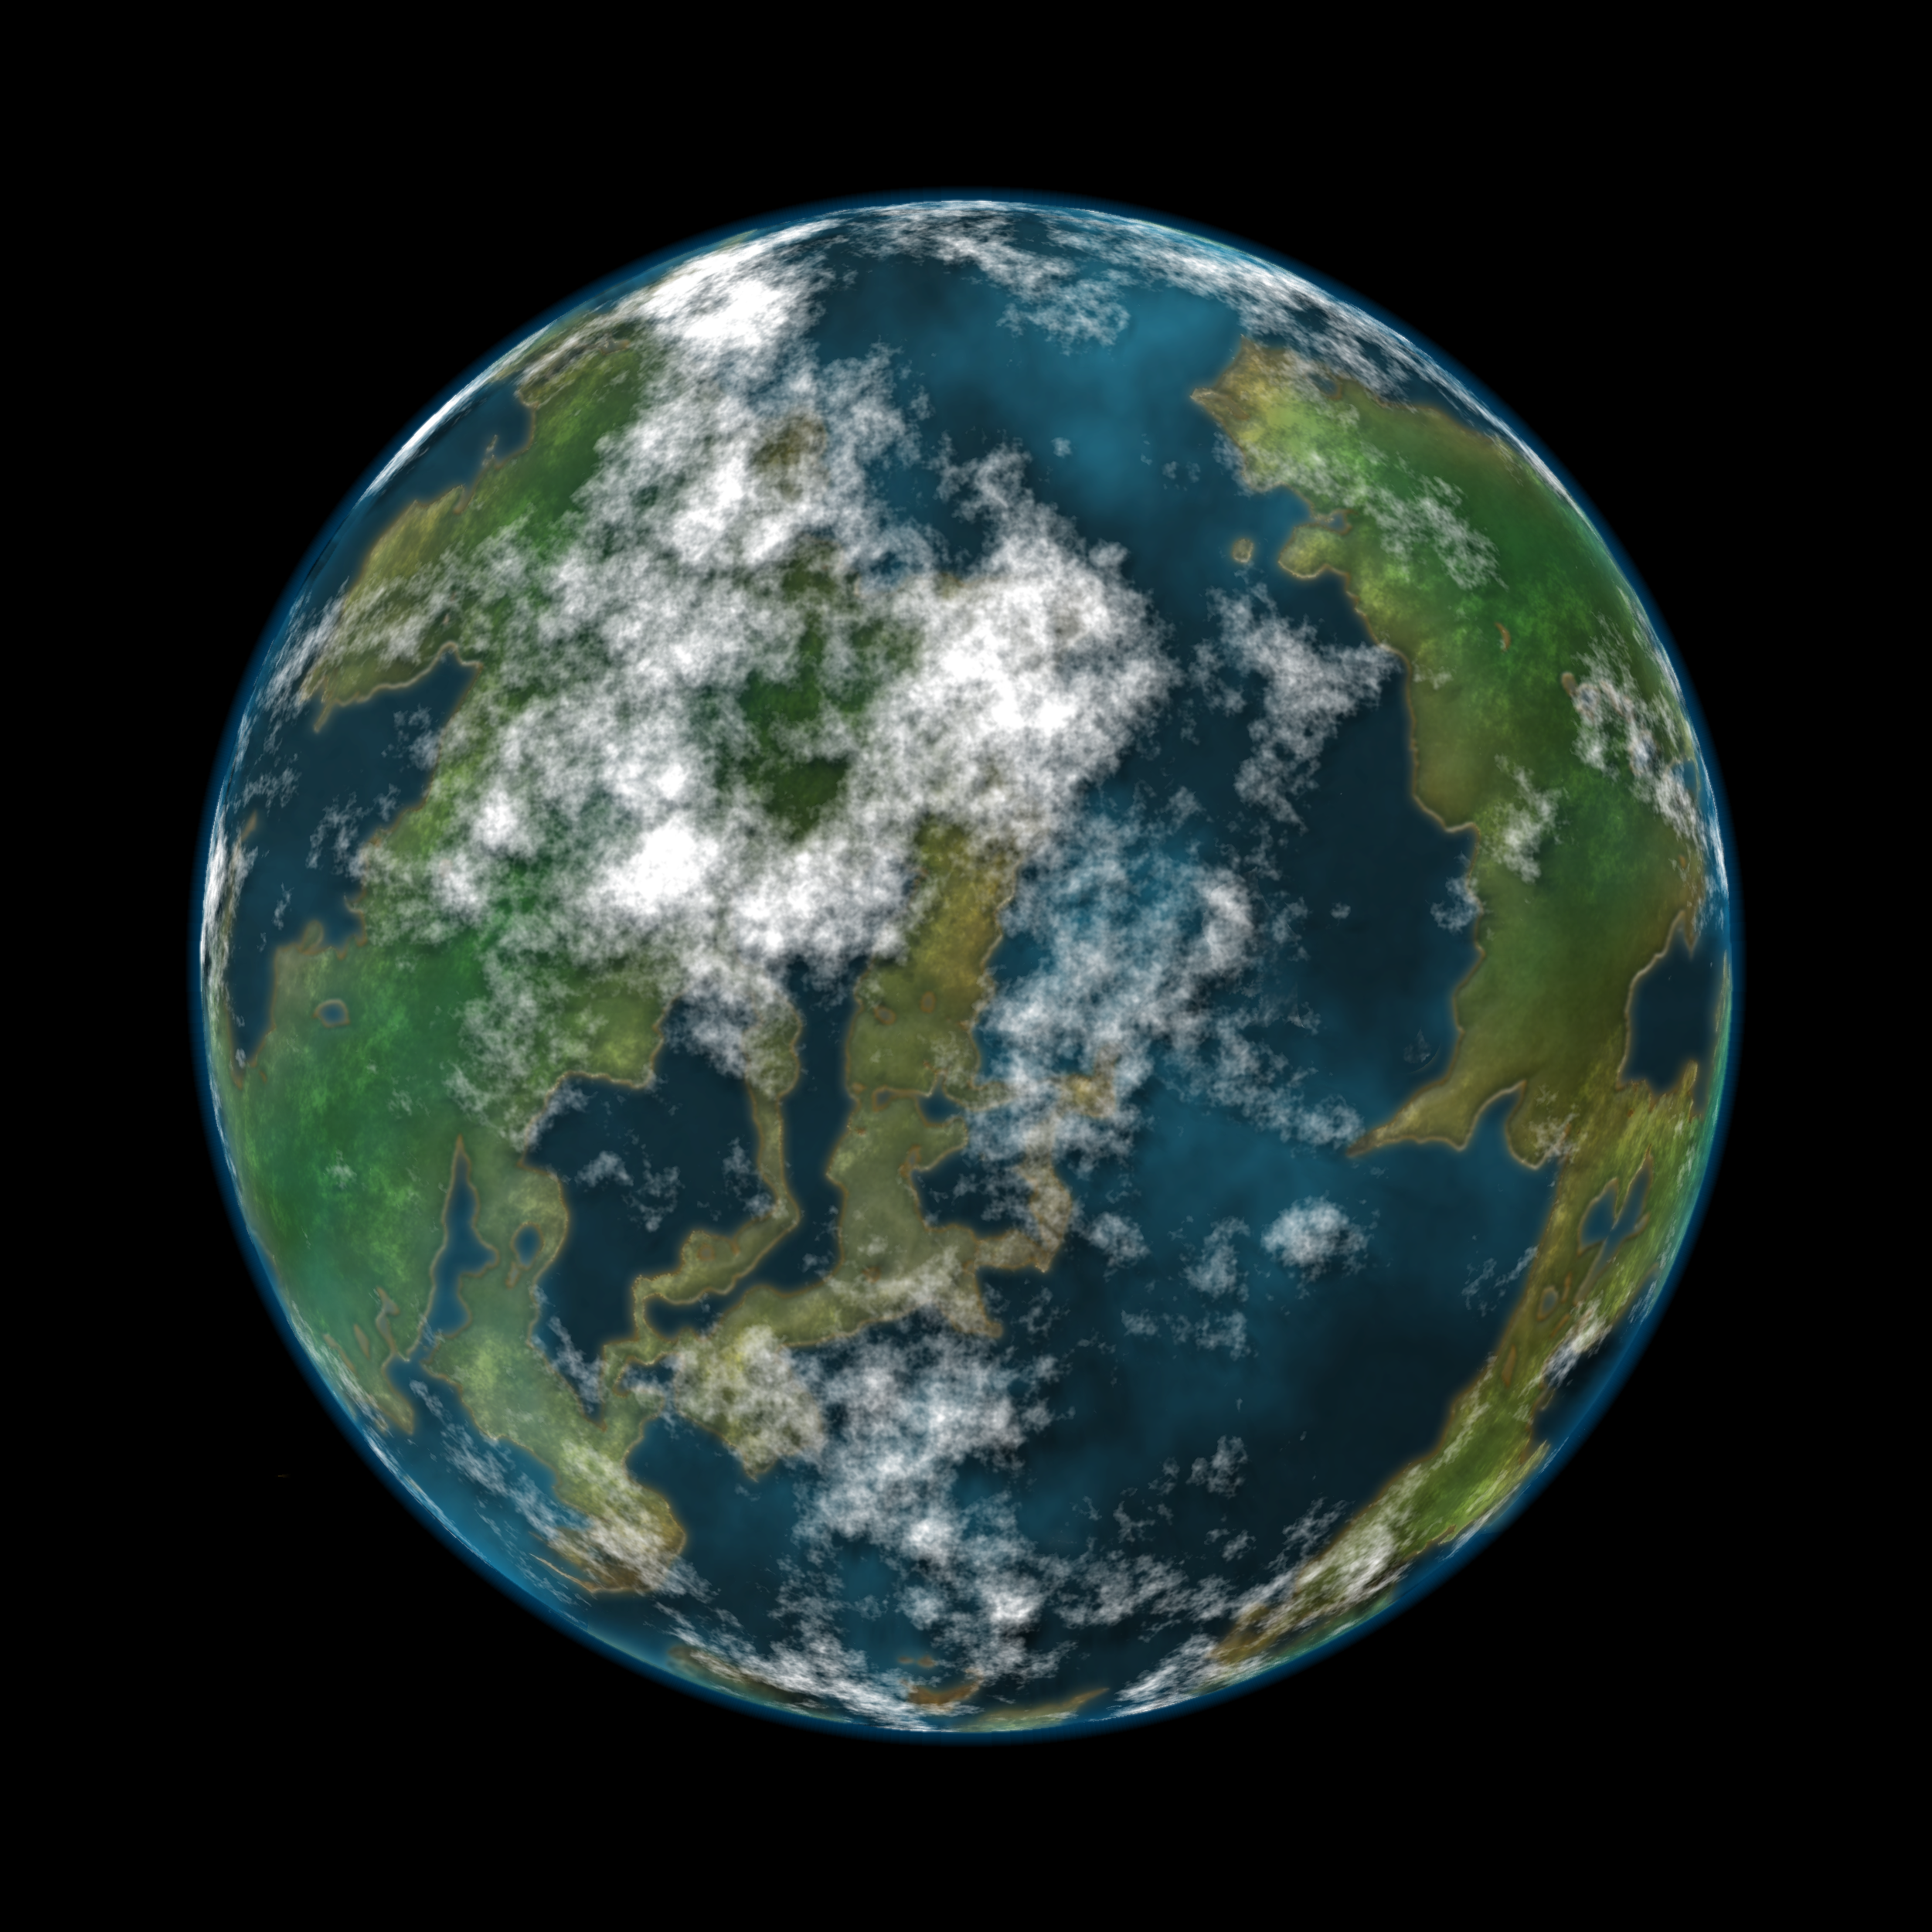 Earth-like Planet by deviously-buzzkilled on DeviantArt